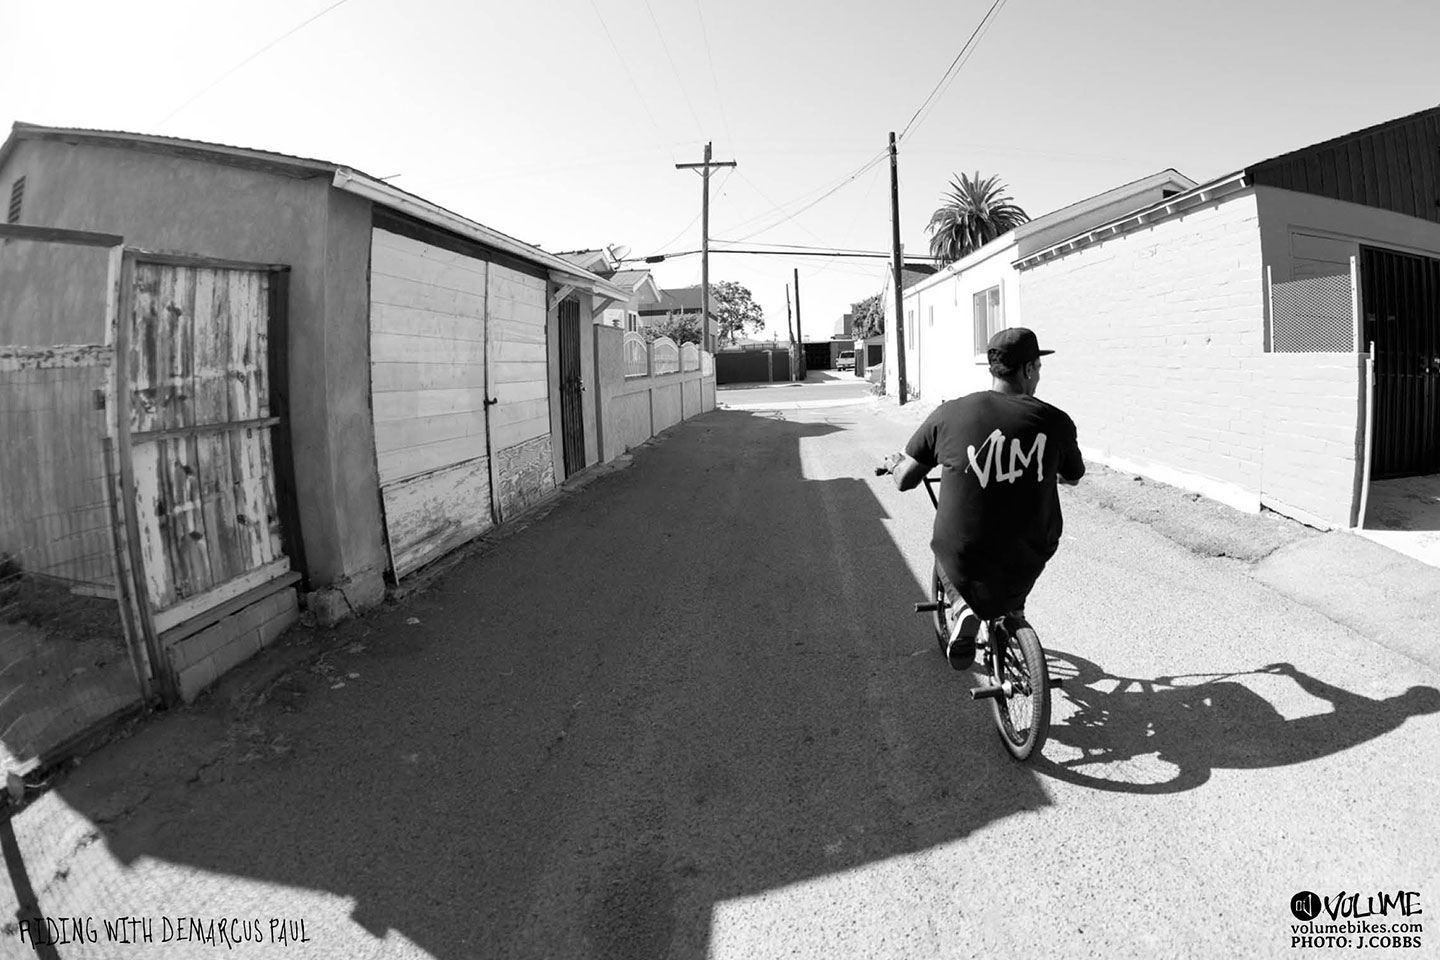 vlm-riding-with-demarcus11